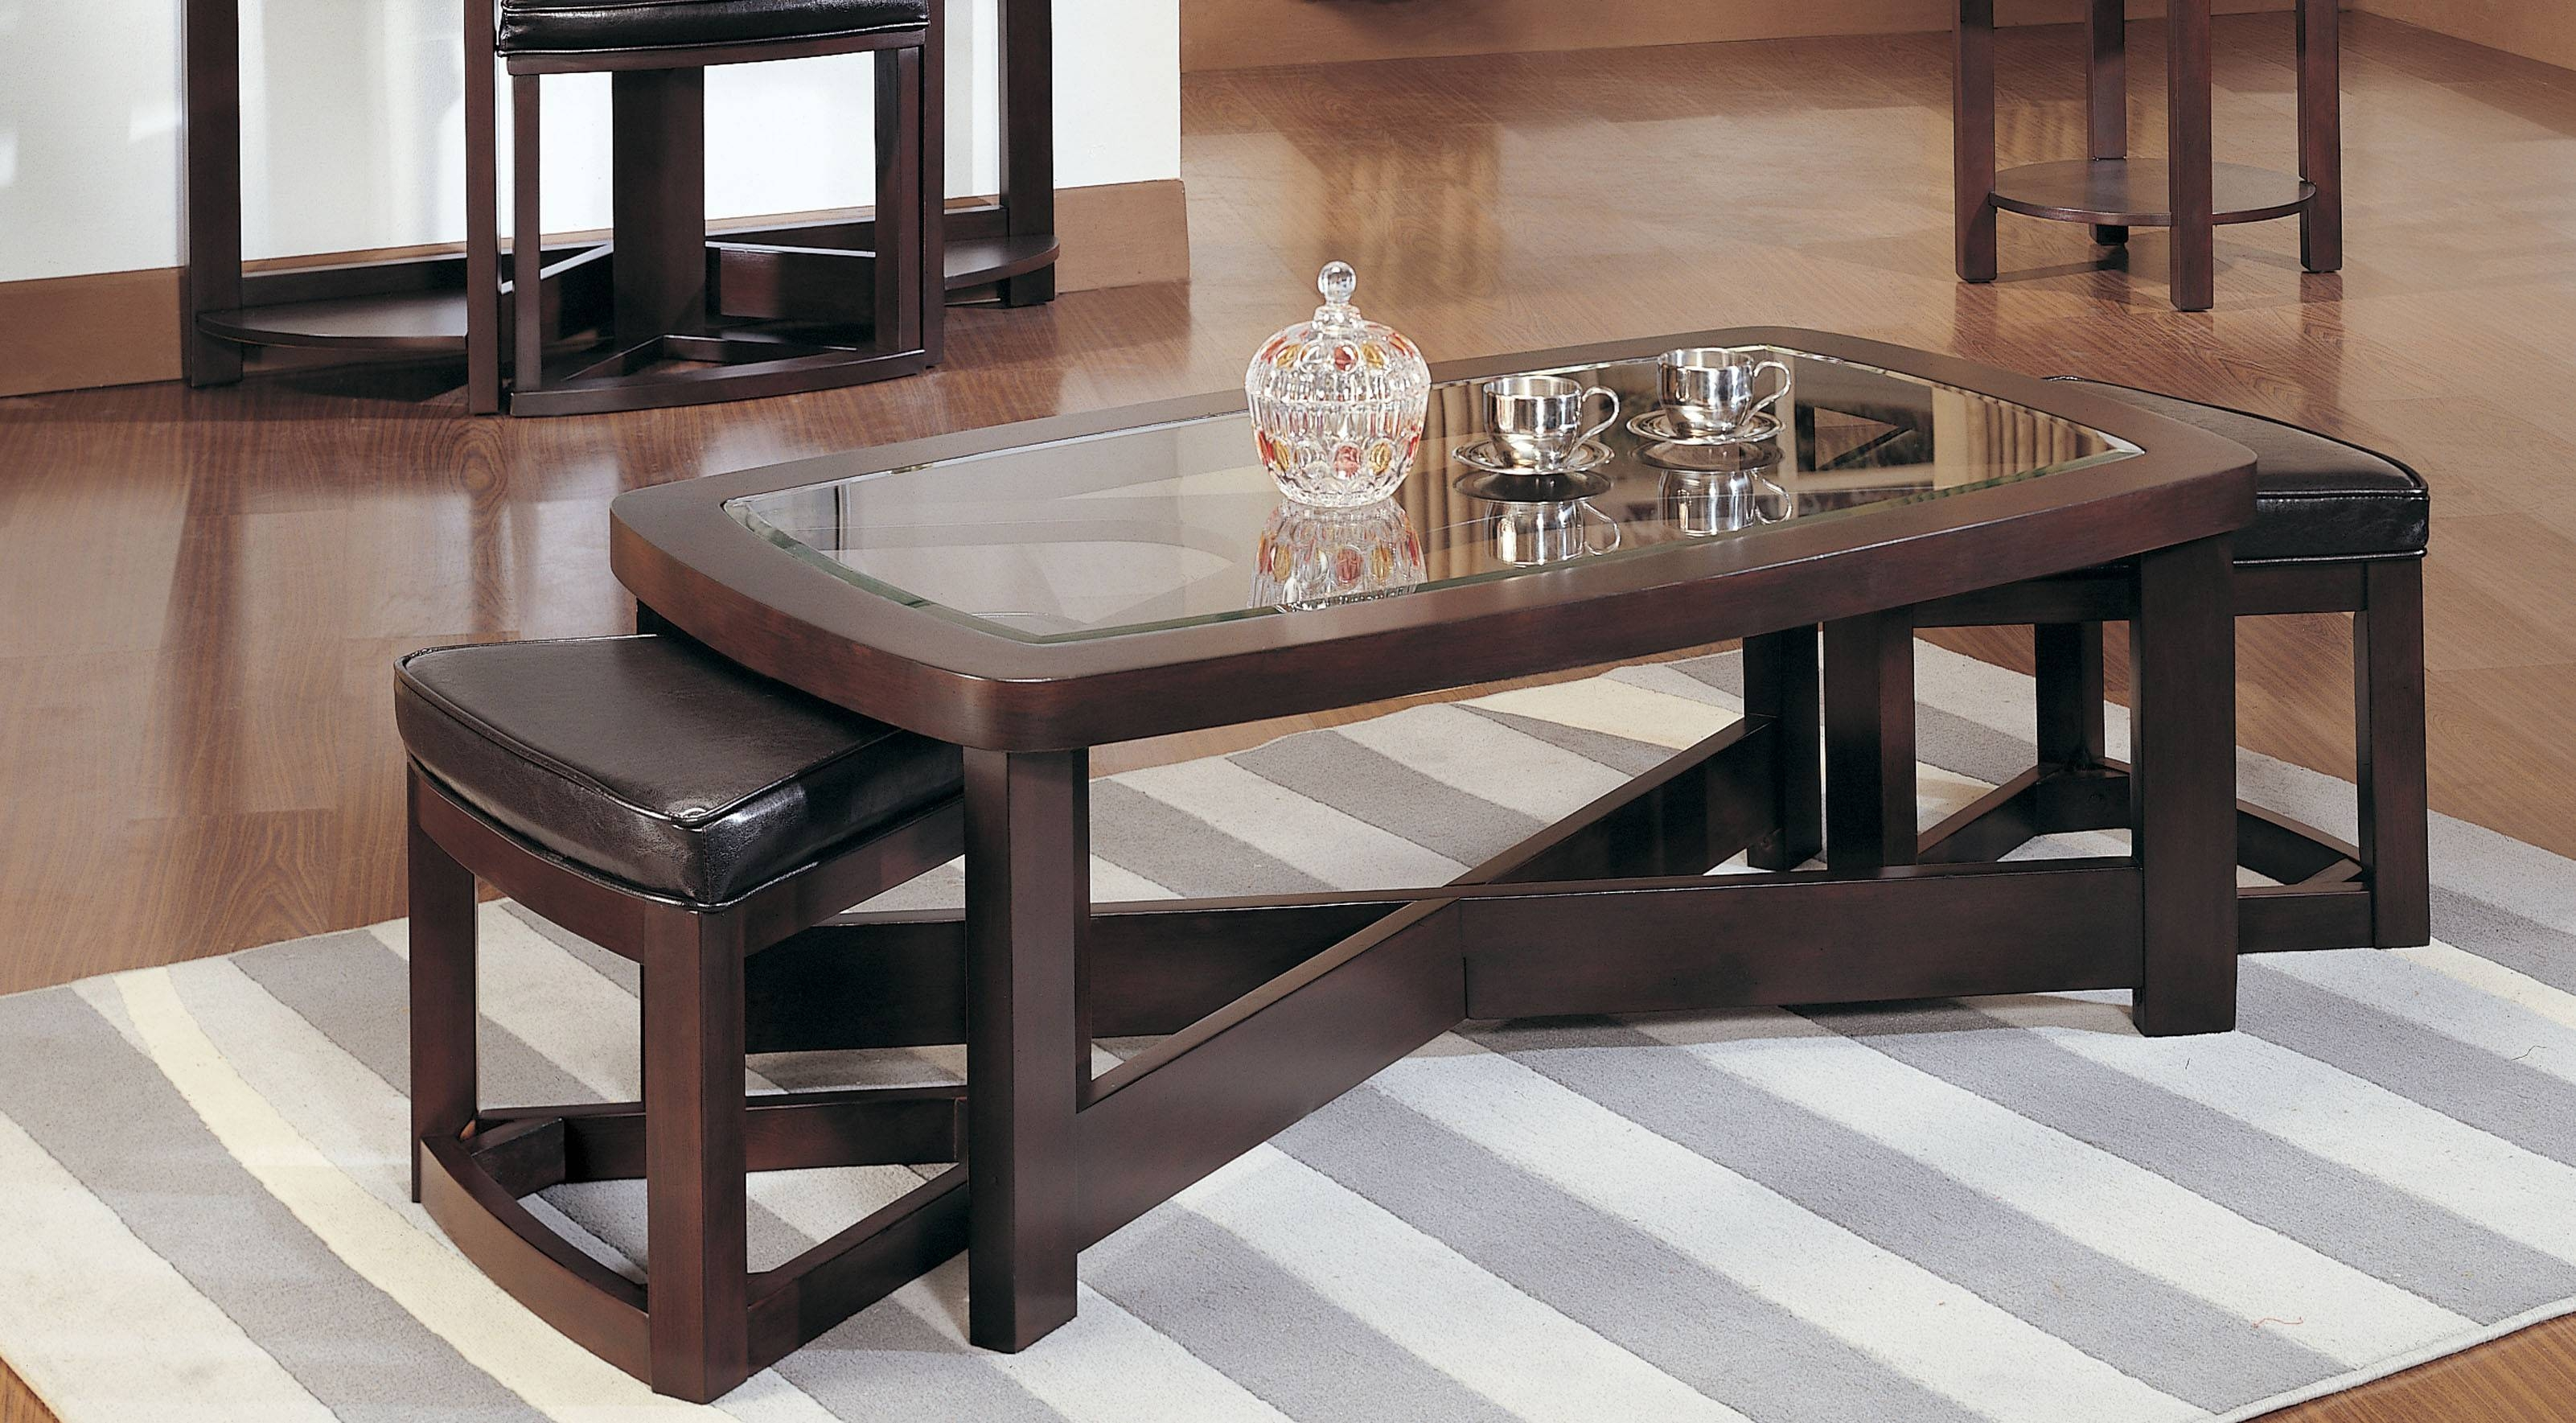 Furniture: Luxury Coffee Table With Stools For Living Room For Coffee Table With Stools (View 18 of 30)